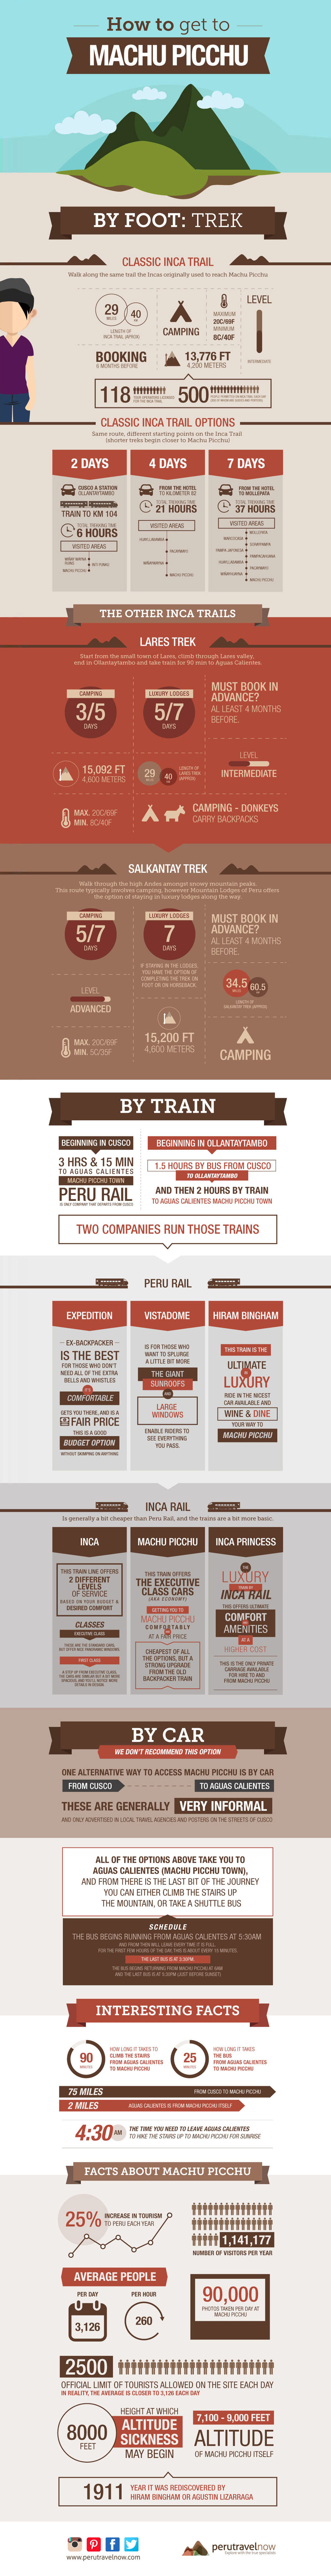 How to Visit Machu Picchu - Travel Infographic